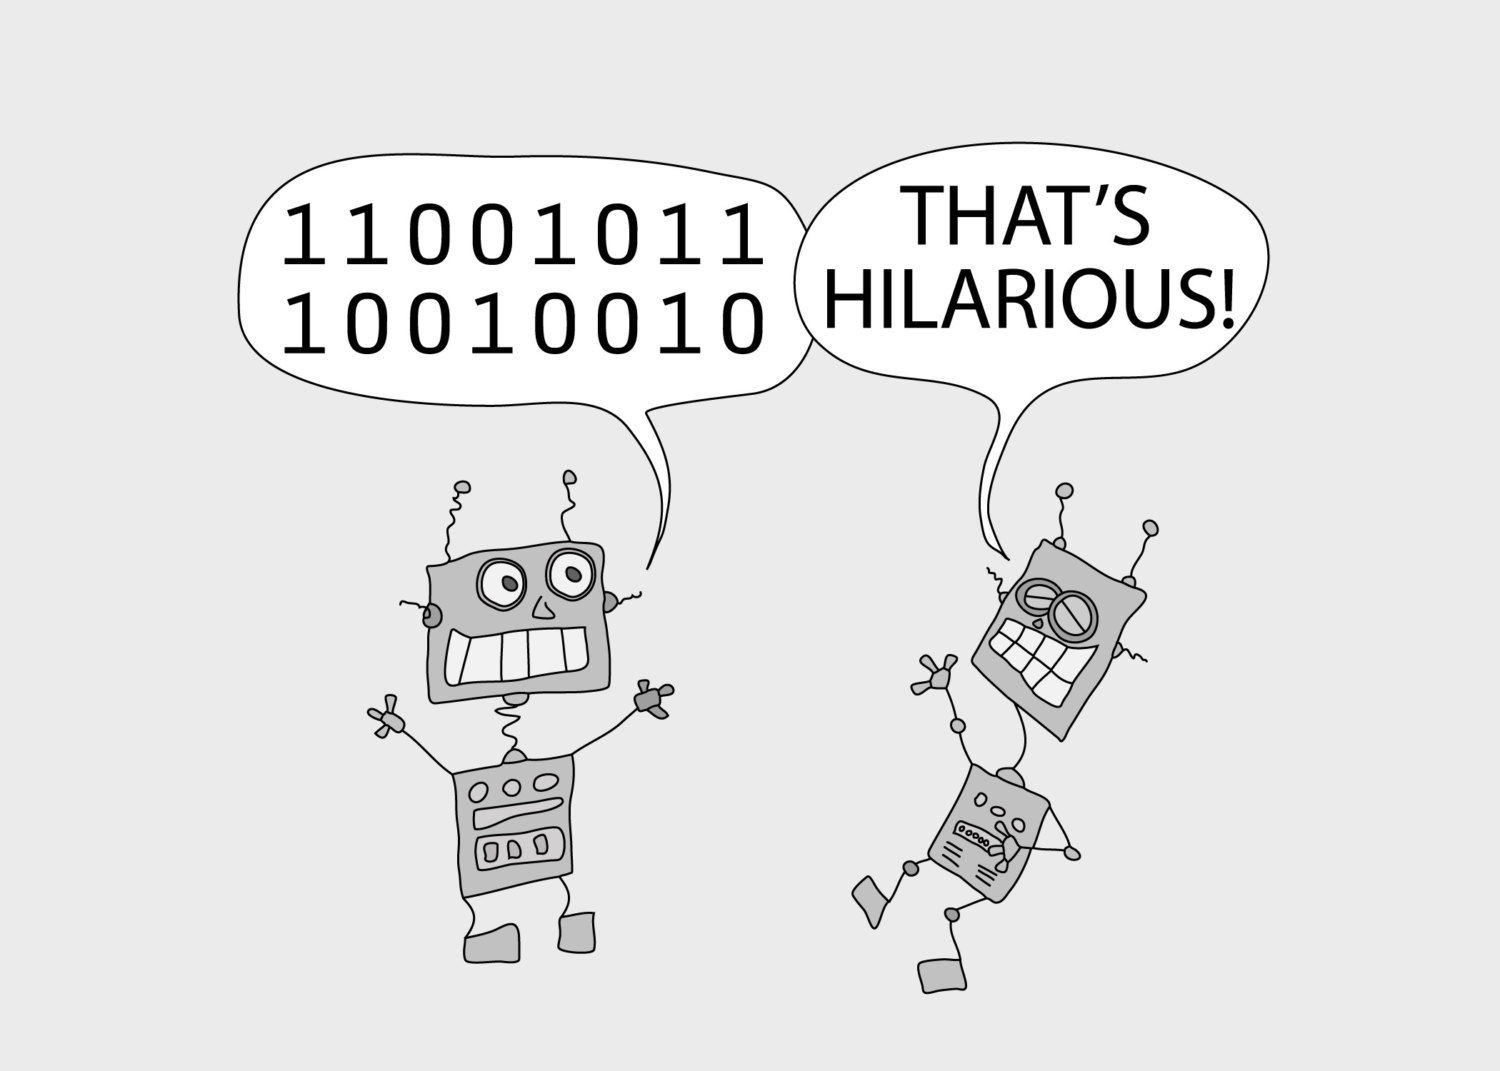 Robot telling a joke in binary code to another robot